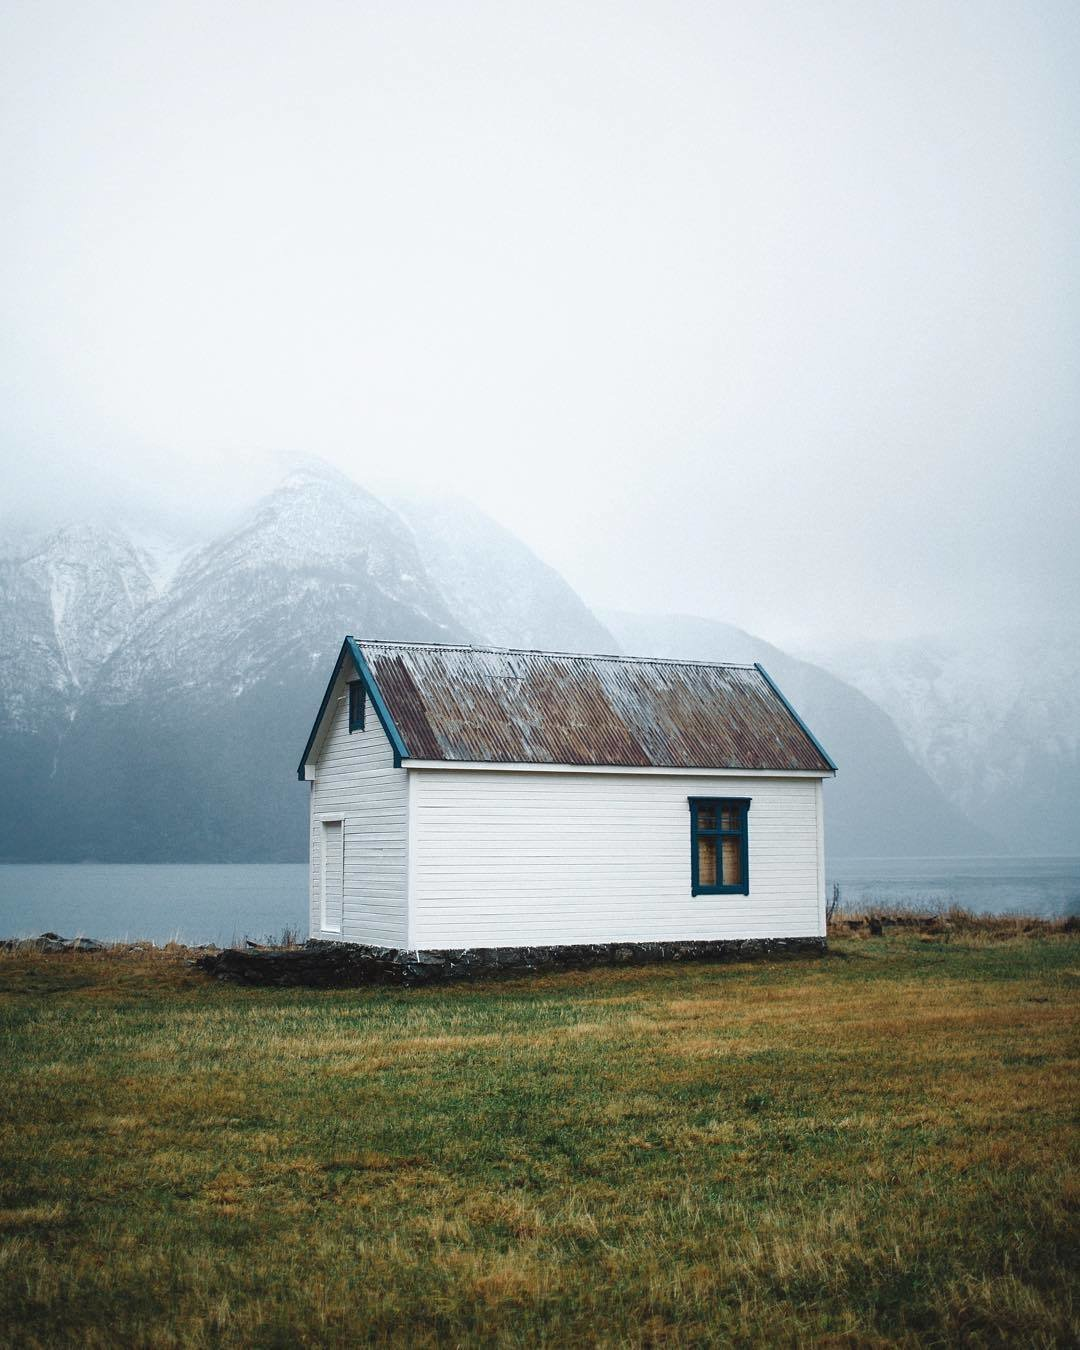 Cabins & Hideouts by Stephen Blake from A Collection of Photographs